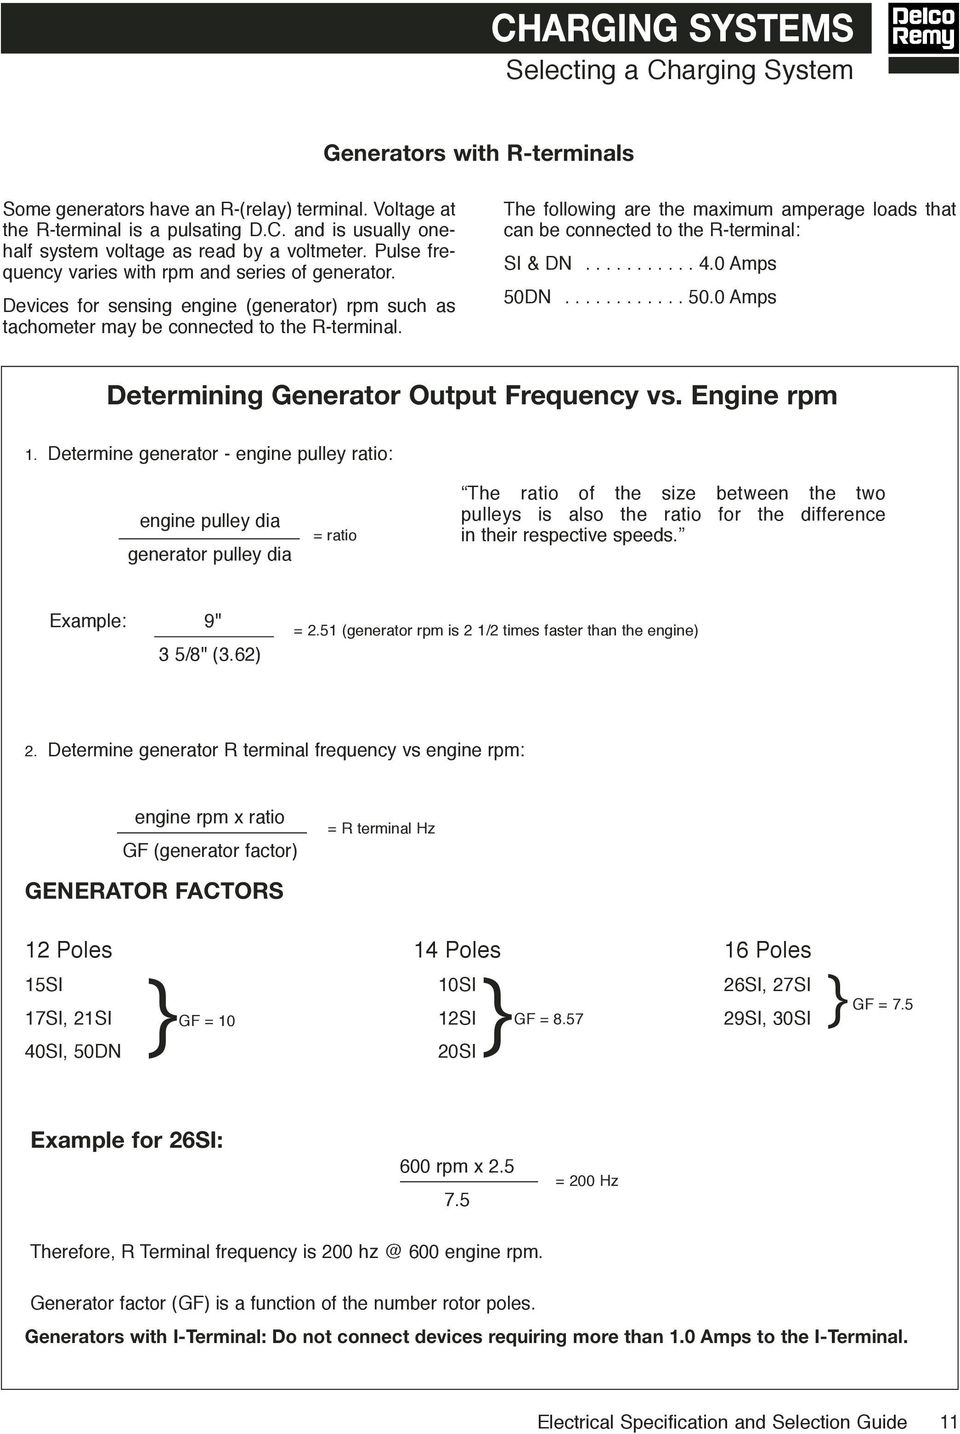 Electrical Specifications Selection Guide Pdf Delco Alternator Regulator F And R Terminals The Following Are Maximum Amperage Loads That Can Be Connected To Terminal